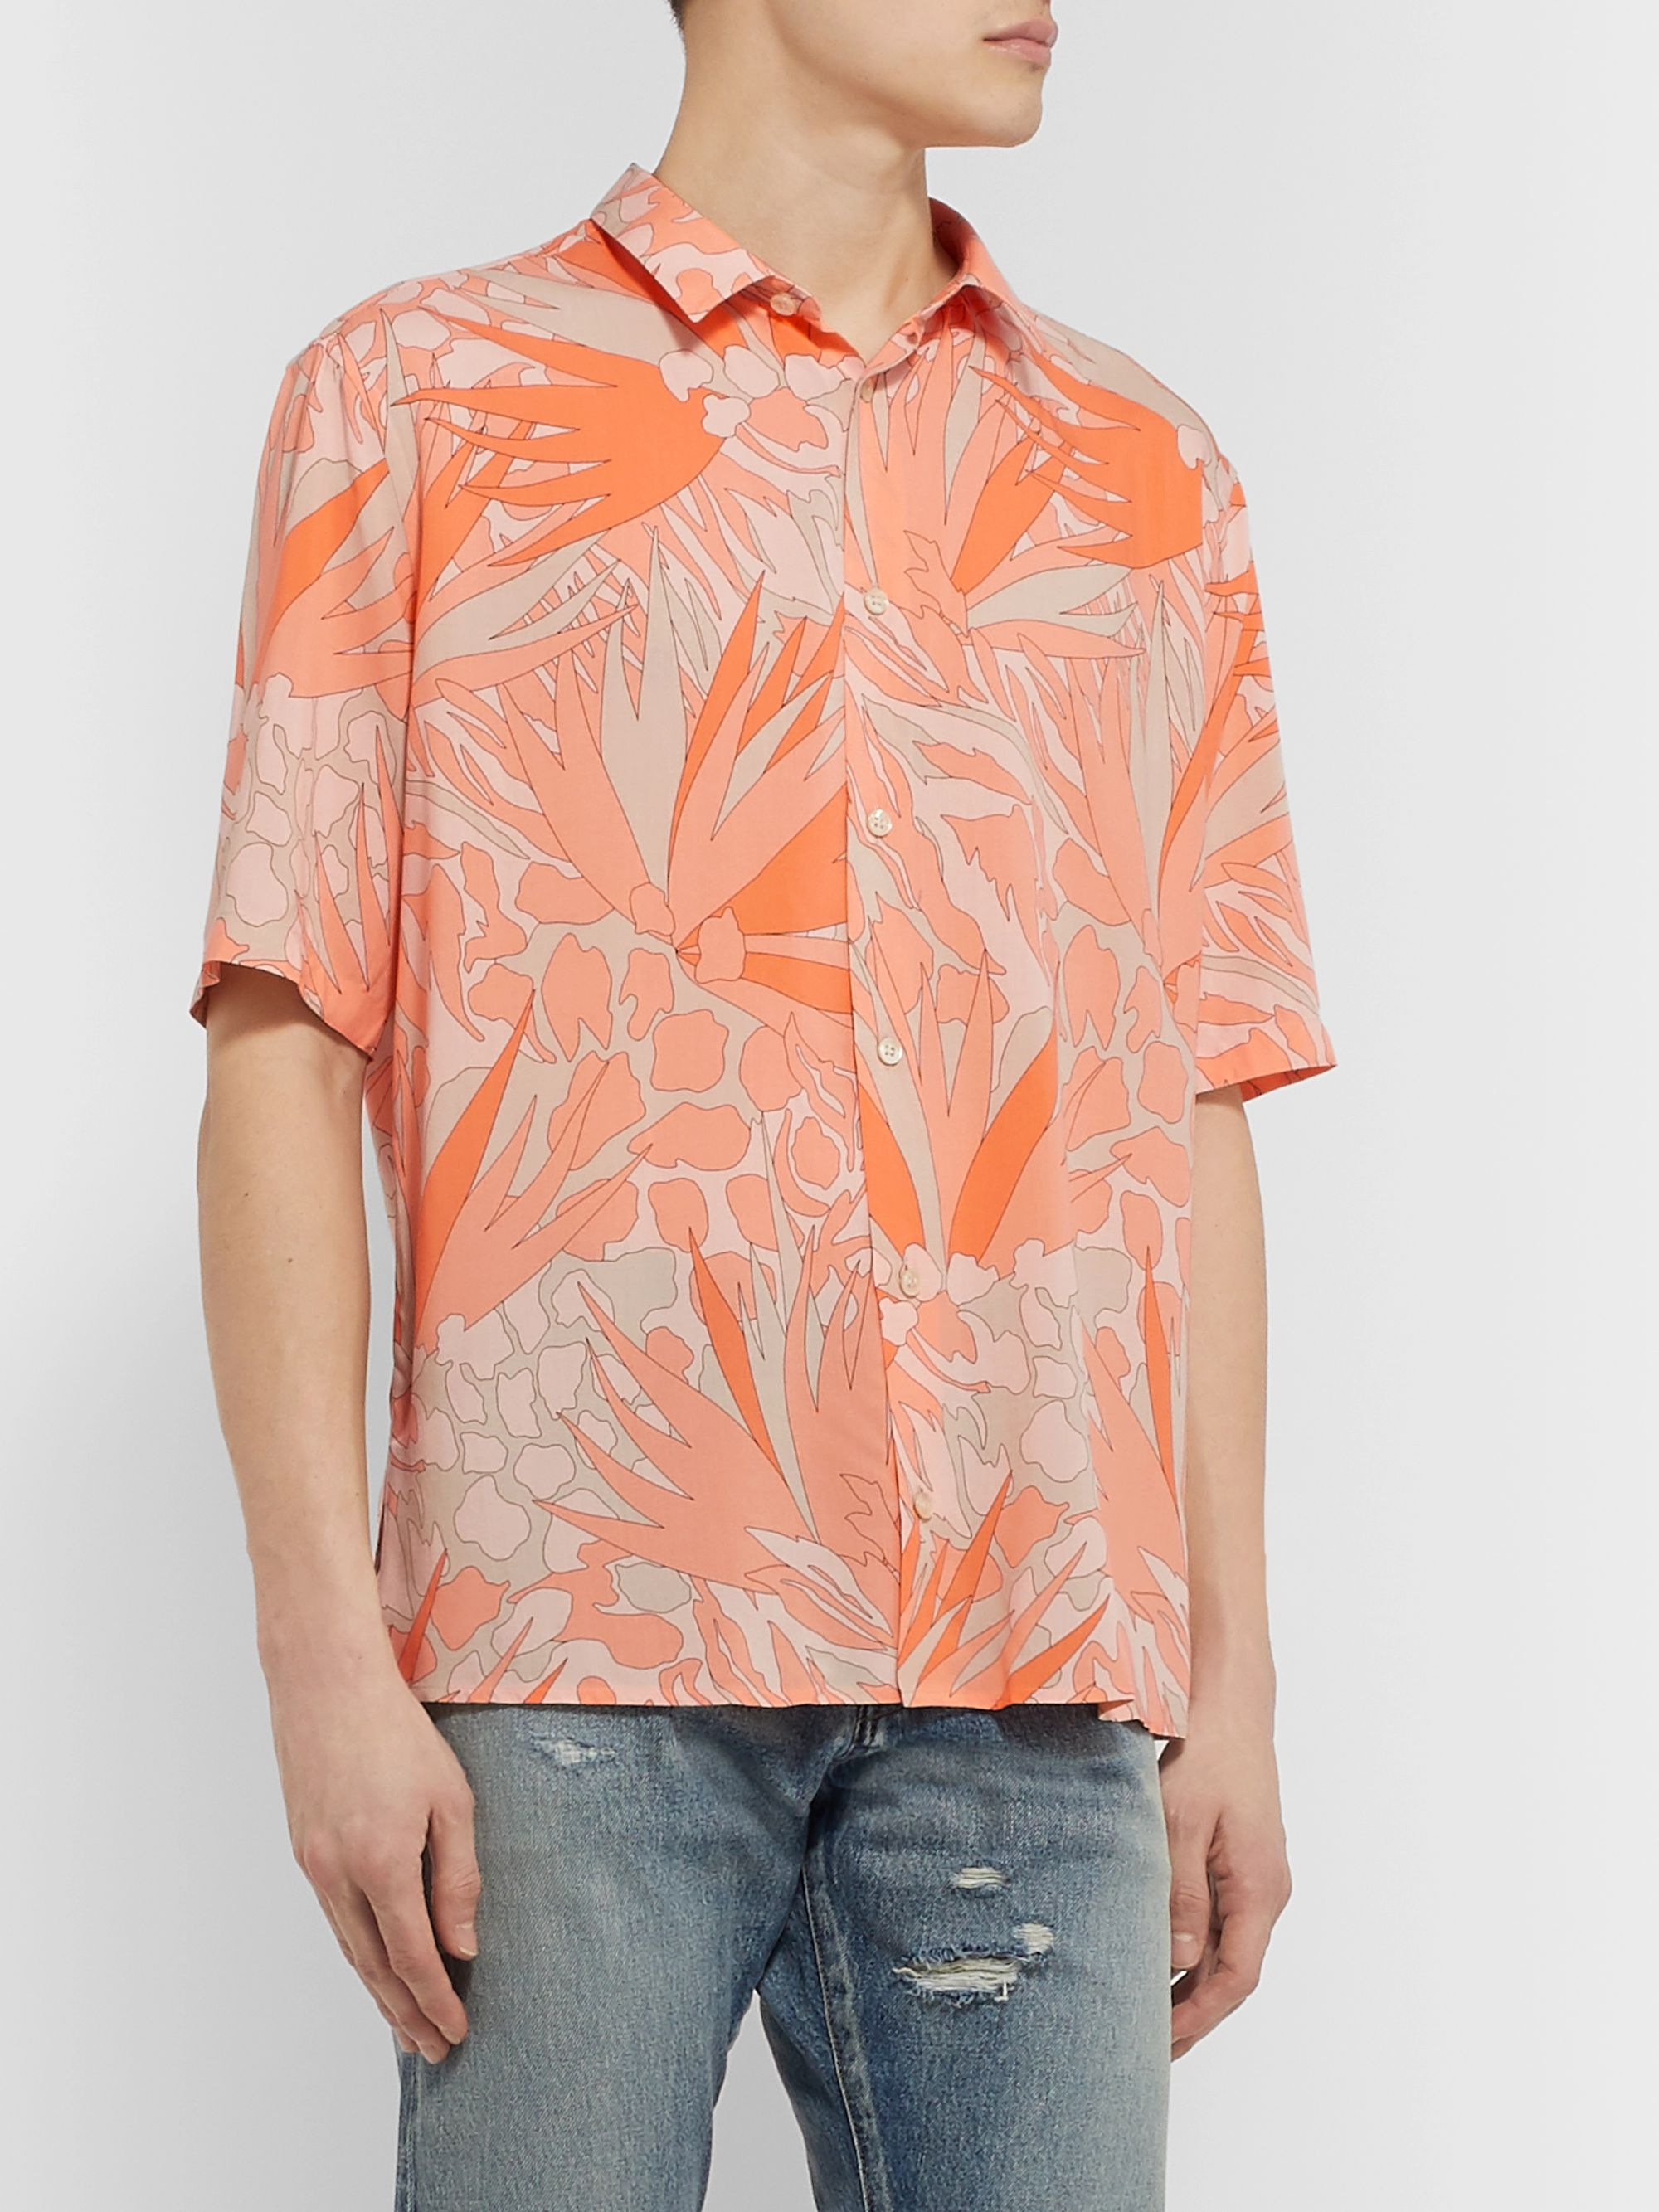 SAINT LAURENT Printed Voile Shirt